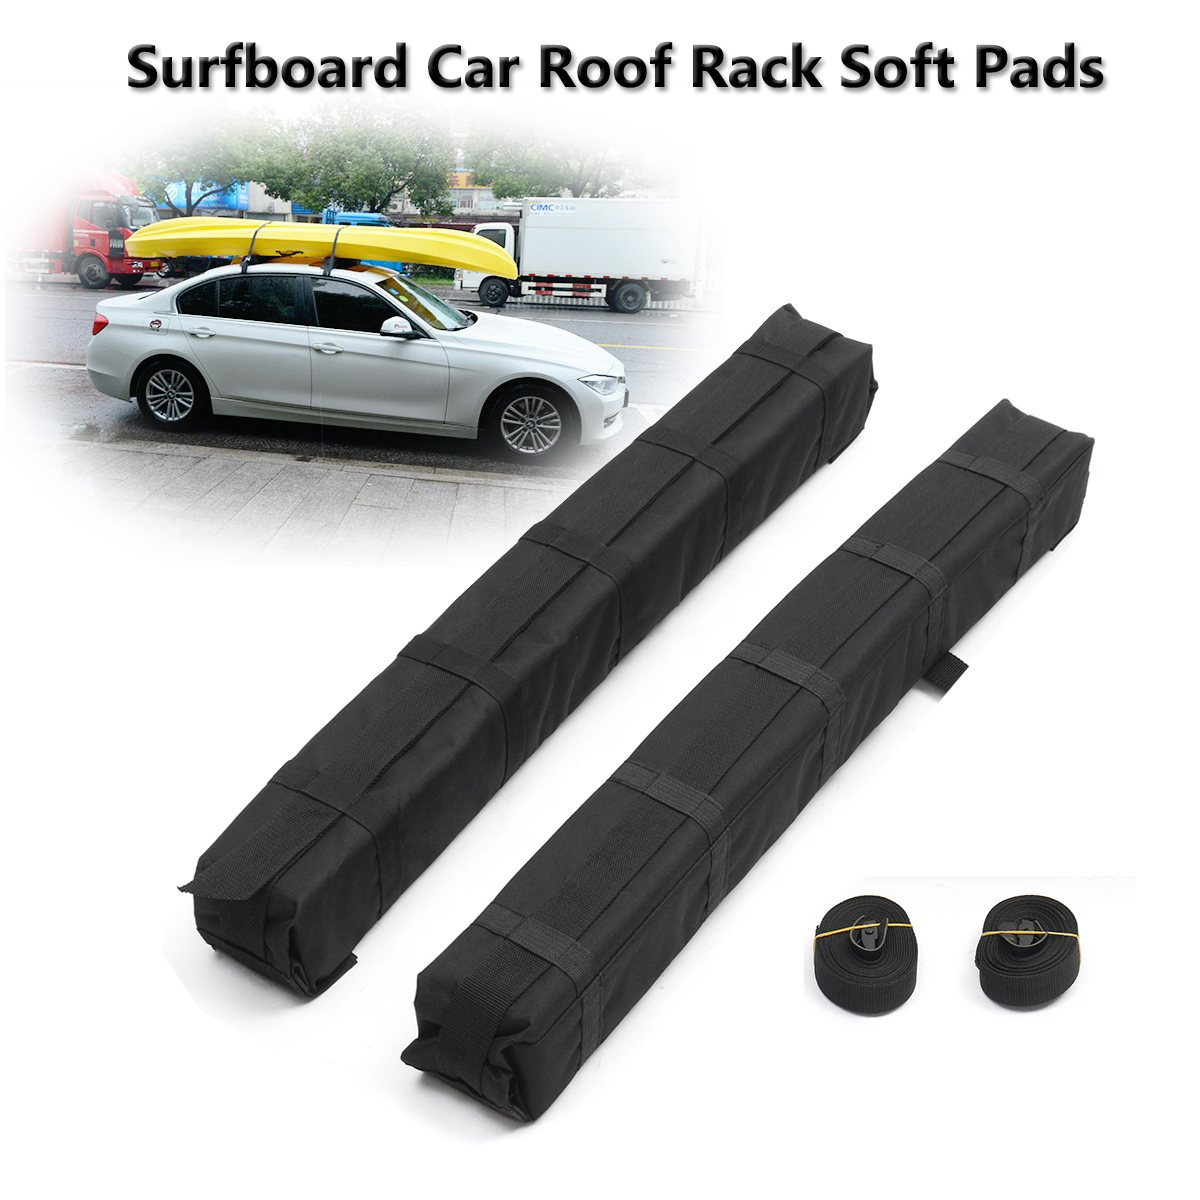 Top 8 Most Popular Soft Kayak Roof Rack Ideas And Get Free Shipping L00lmce6